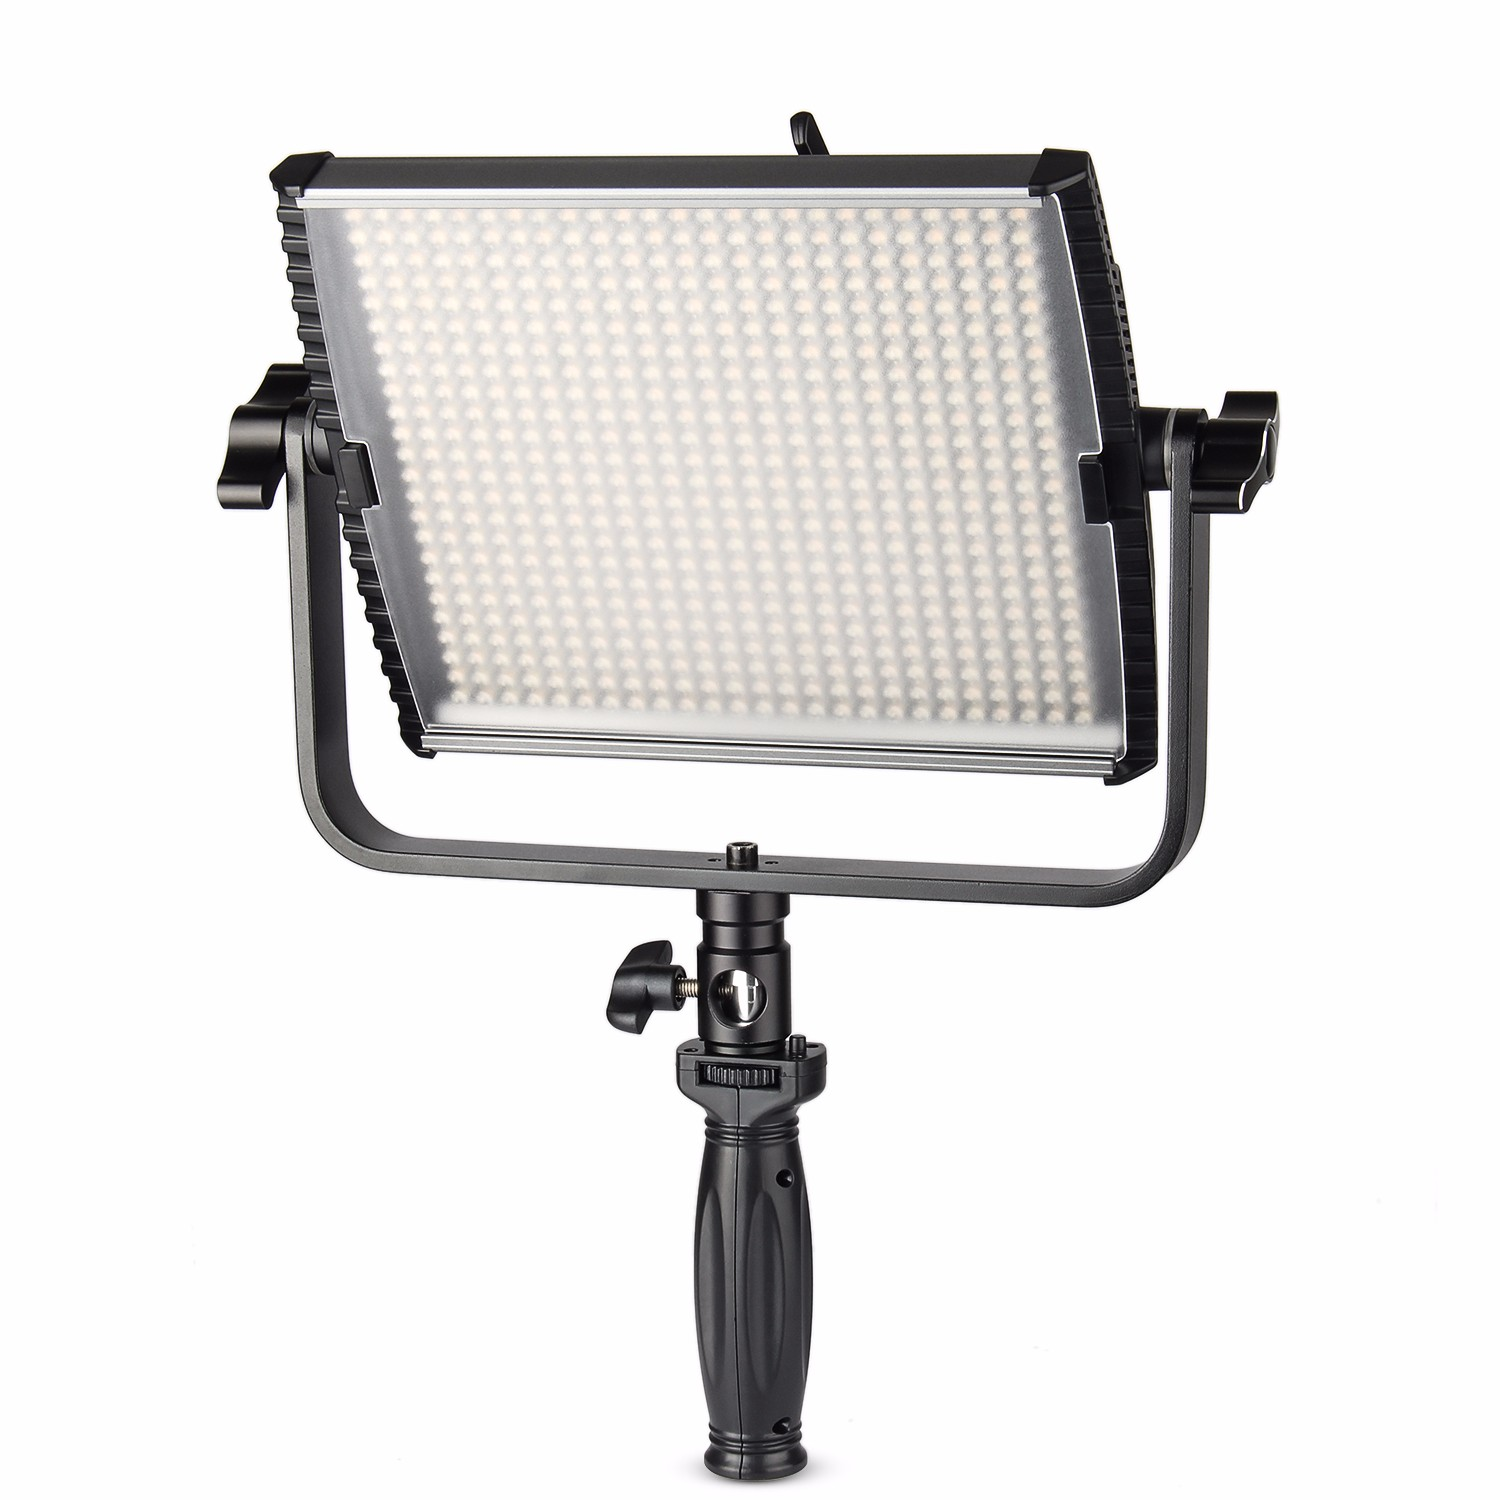 EACHSHOT ES600D CRI95 600 PCS Bulb 36W Daylight Dimmable Led Video Continuous Light Aluminum Panel w 99 Channels Remote Control in Photographic Lighting from Consumer Electronics